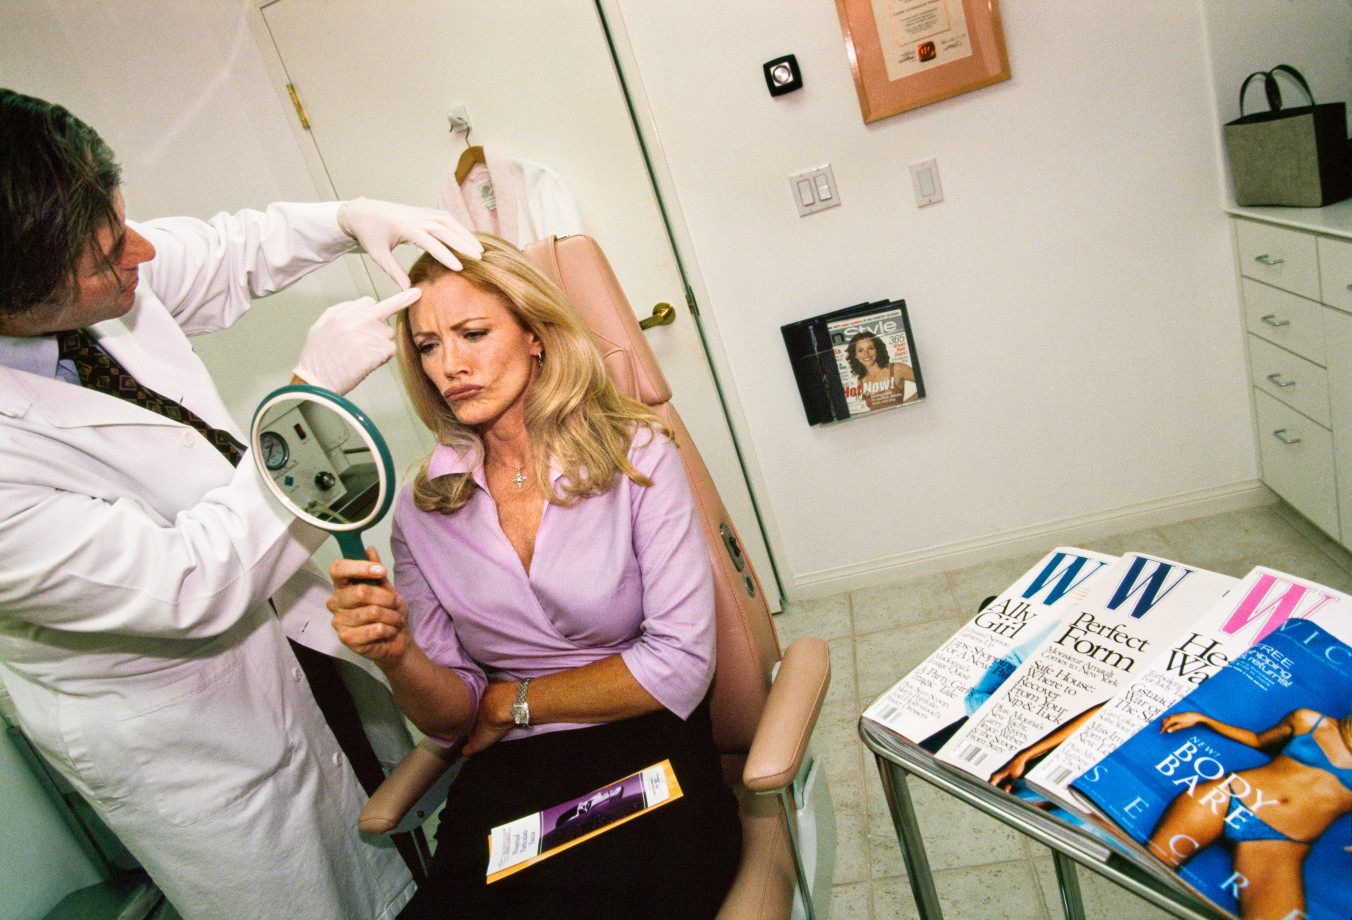 Former Playboy Playmate Shannon Tweed and celebrity plastic surgeon Dr. Frank Ryan. Beverly Hills, 2000 © Lauren Greenfield/INSTITUTE